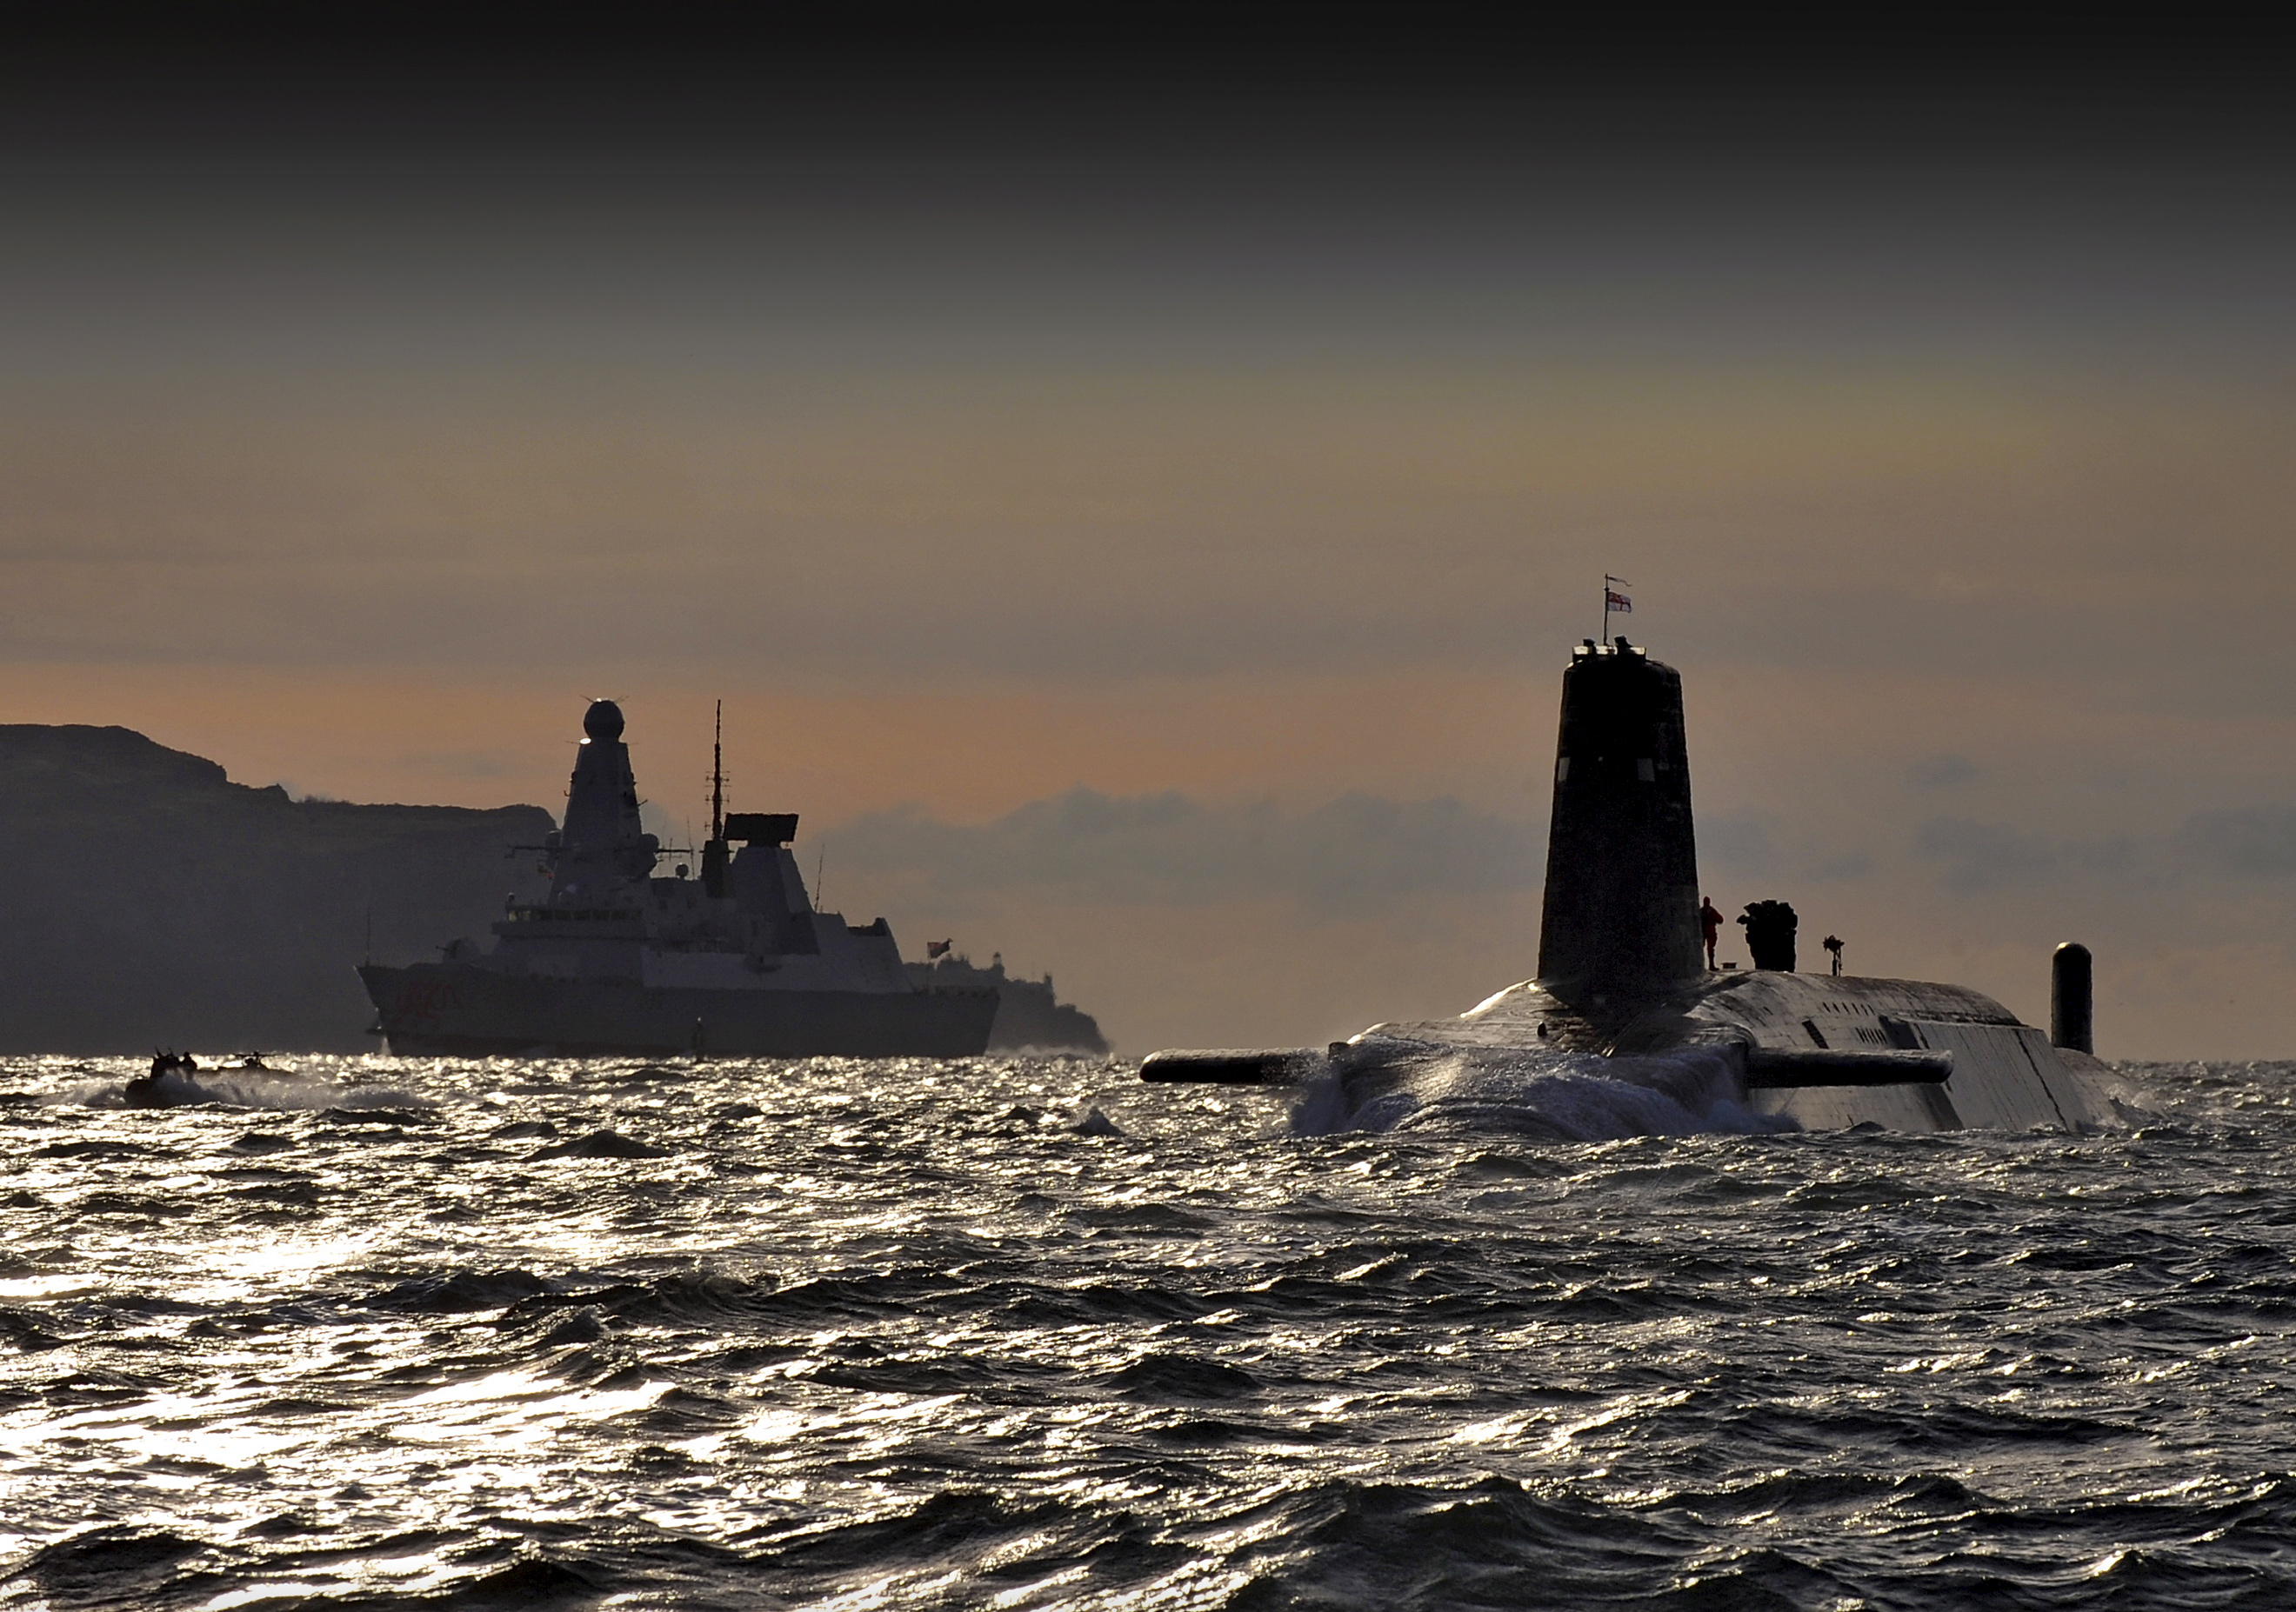 Nuclear Submarine HMS Vanguard Passes HMS Dragon as She Returns to HMNB Clyde, Scotland MOD 45152118.jpg